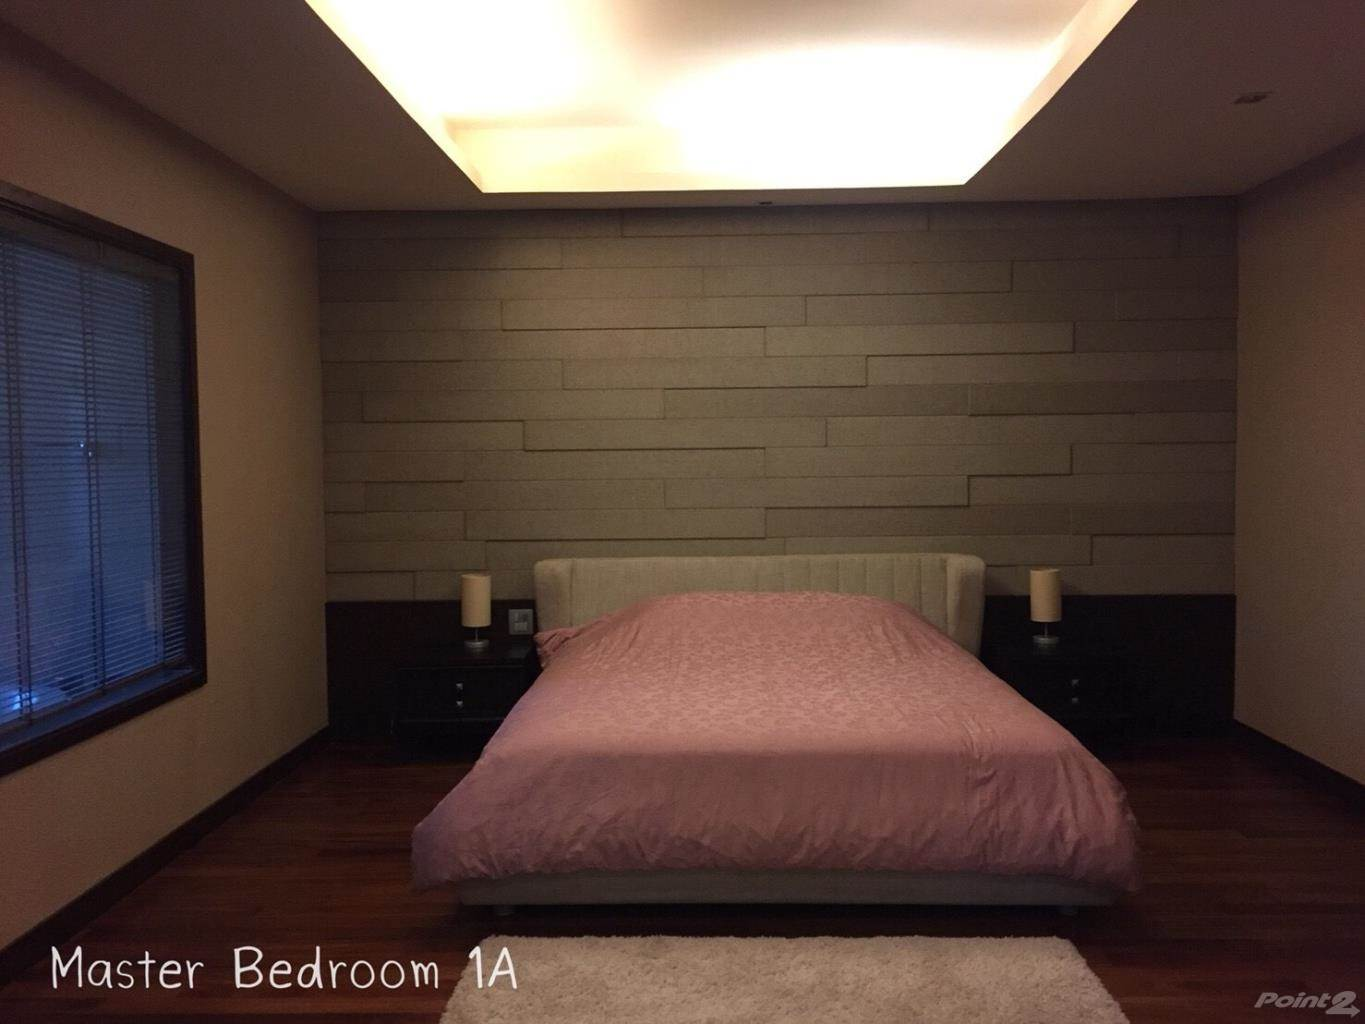 Residential For Rent in Lowrise Apartment, Nanglinchee, Sathon, Bangkok Metropolis   , Thailand